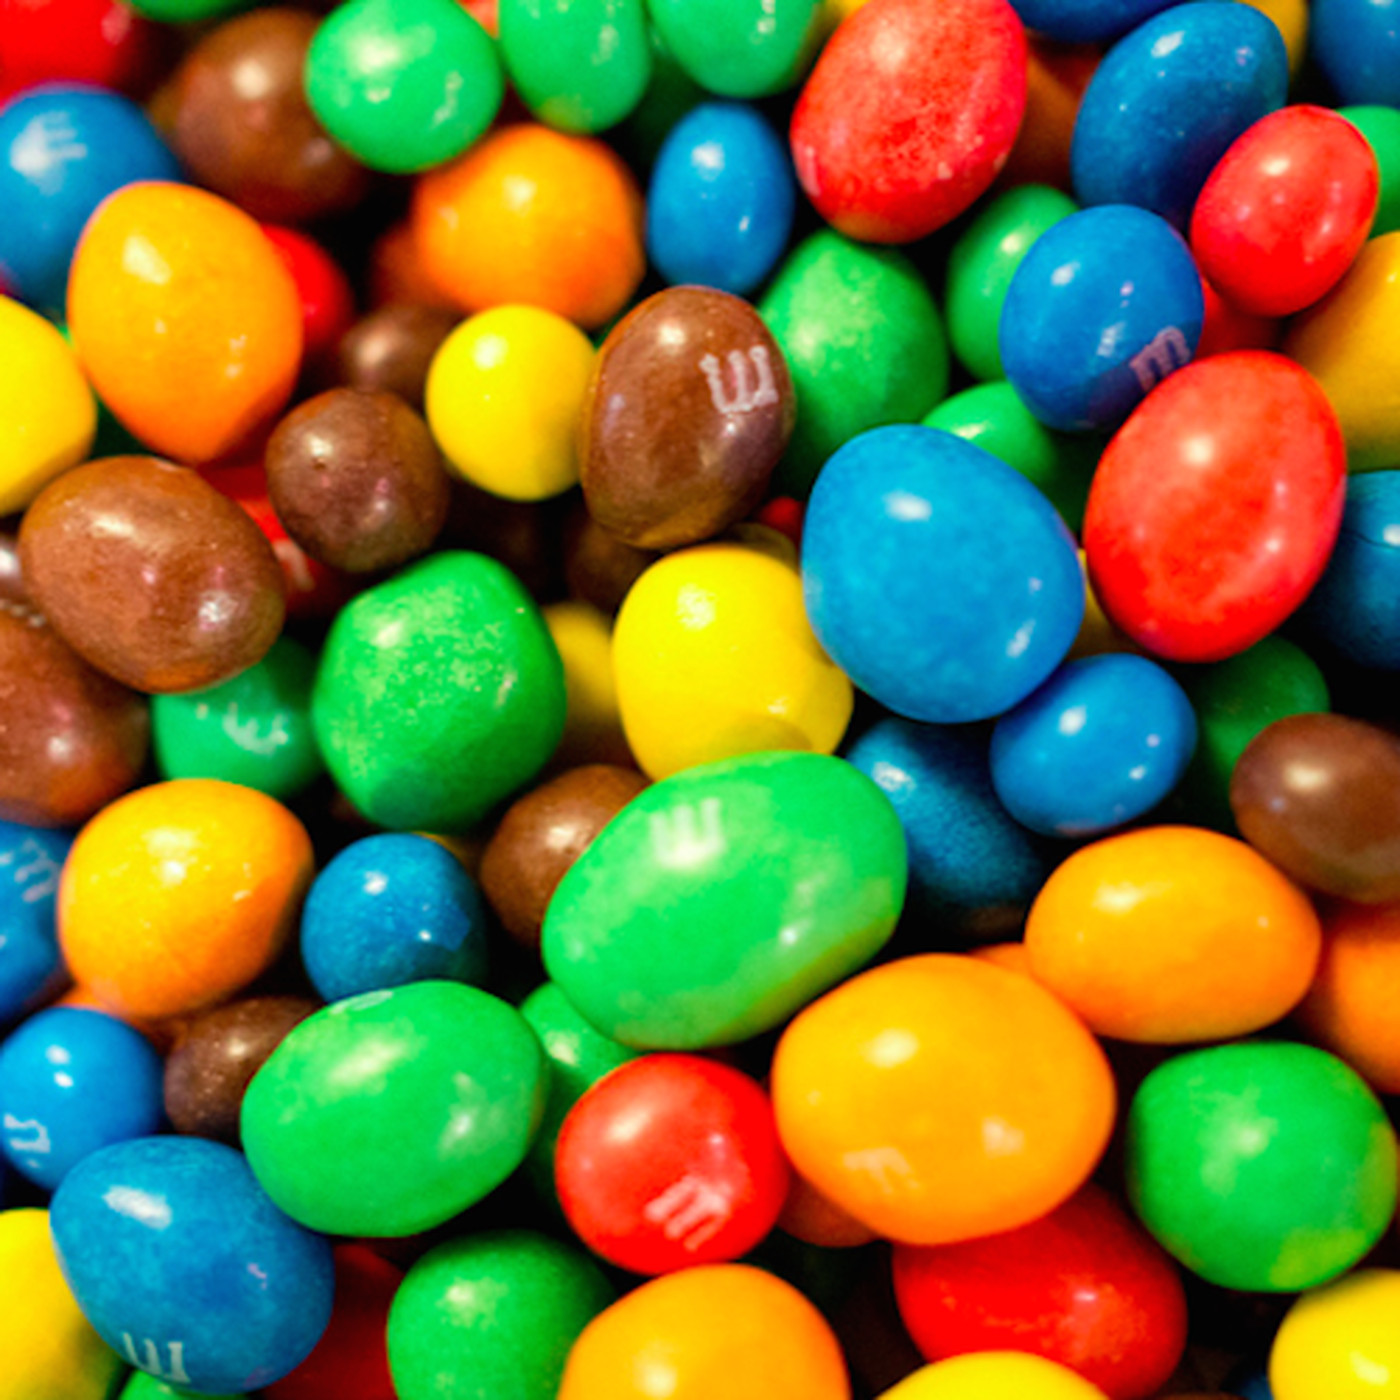 Mars Inc. Eliminates Artificial Colors from M&Ms, Skittles, and More ...